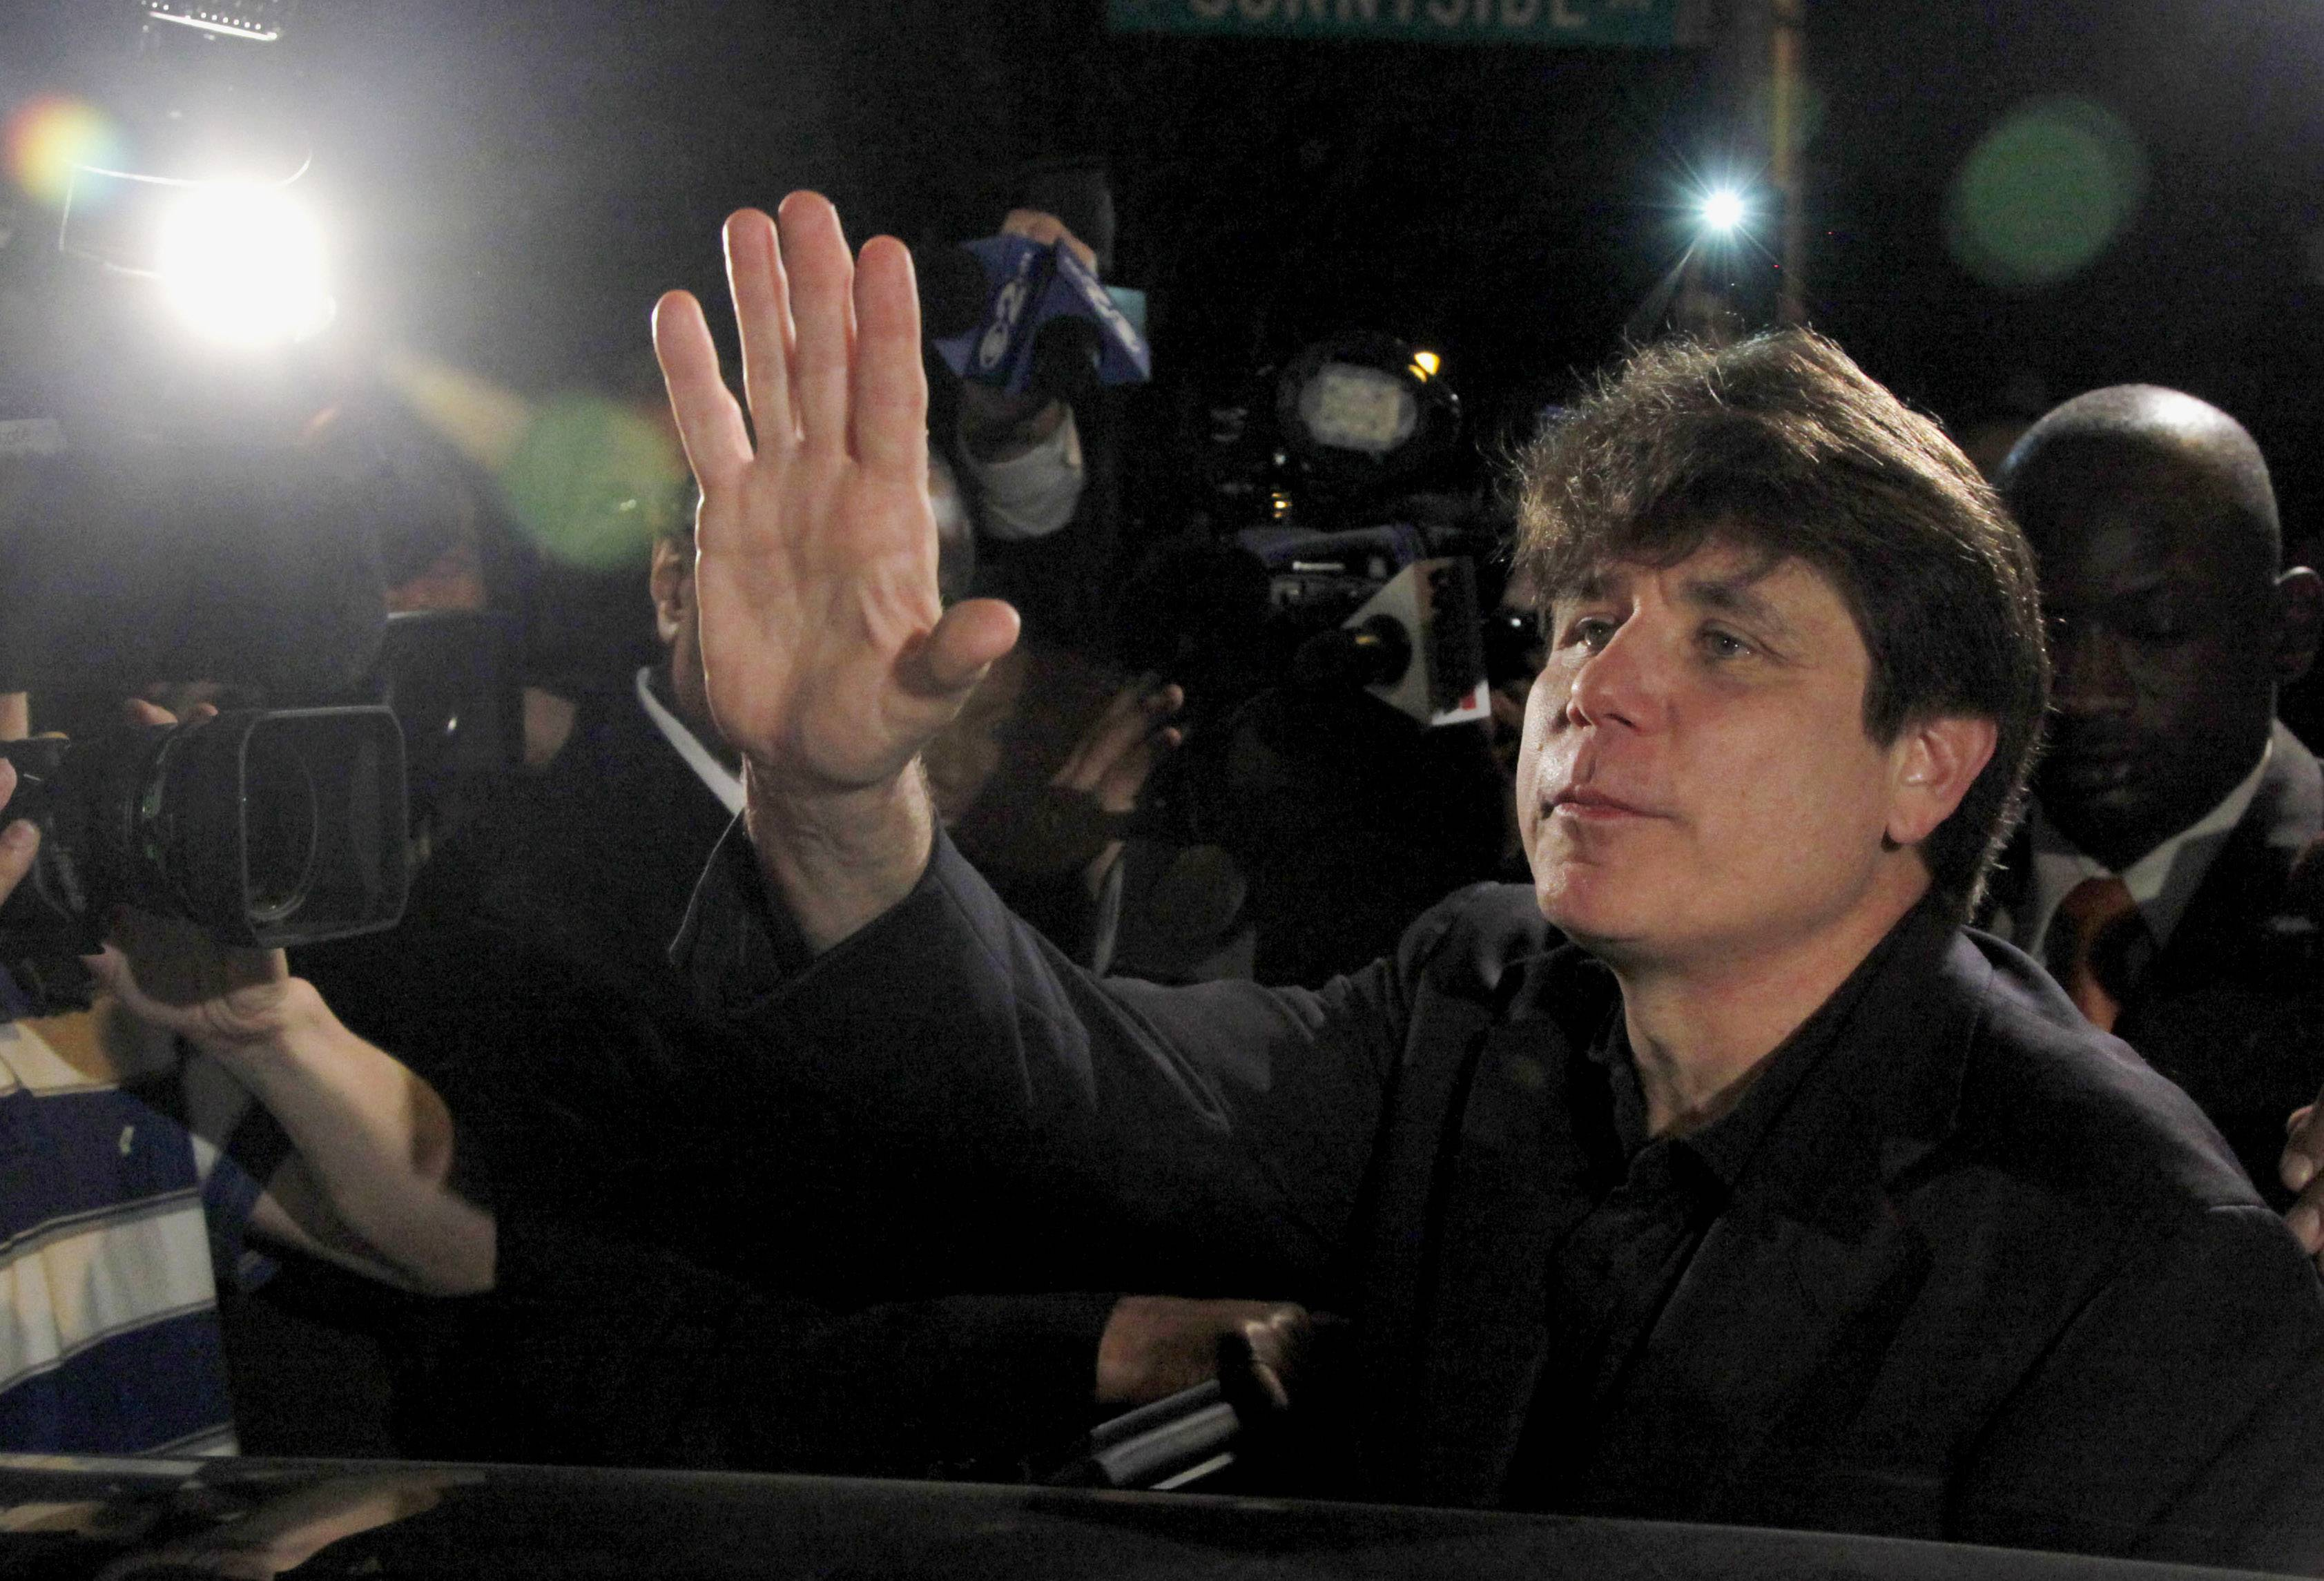 In this March 2012 photo, former Illinois Gov. Rod Blagojevich waves as he departs his Chicago home for Littleton, Colo., to begin his 14-year prison sentence on corruption charges. Blagojevich's lawyers submitted an additional argument on why an appeals court in Chicago should overturn the imprisoned former governor's convictions Wednesday in Chicago. The two-page filing with the U.S. 7th Circuit Court of Appeals refers to an April Supreme Court decision striking down laws that restrict aggregate limits on campaign contributions.